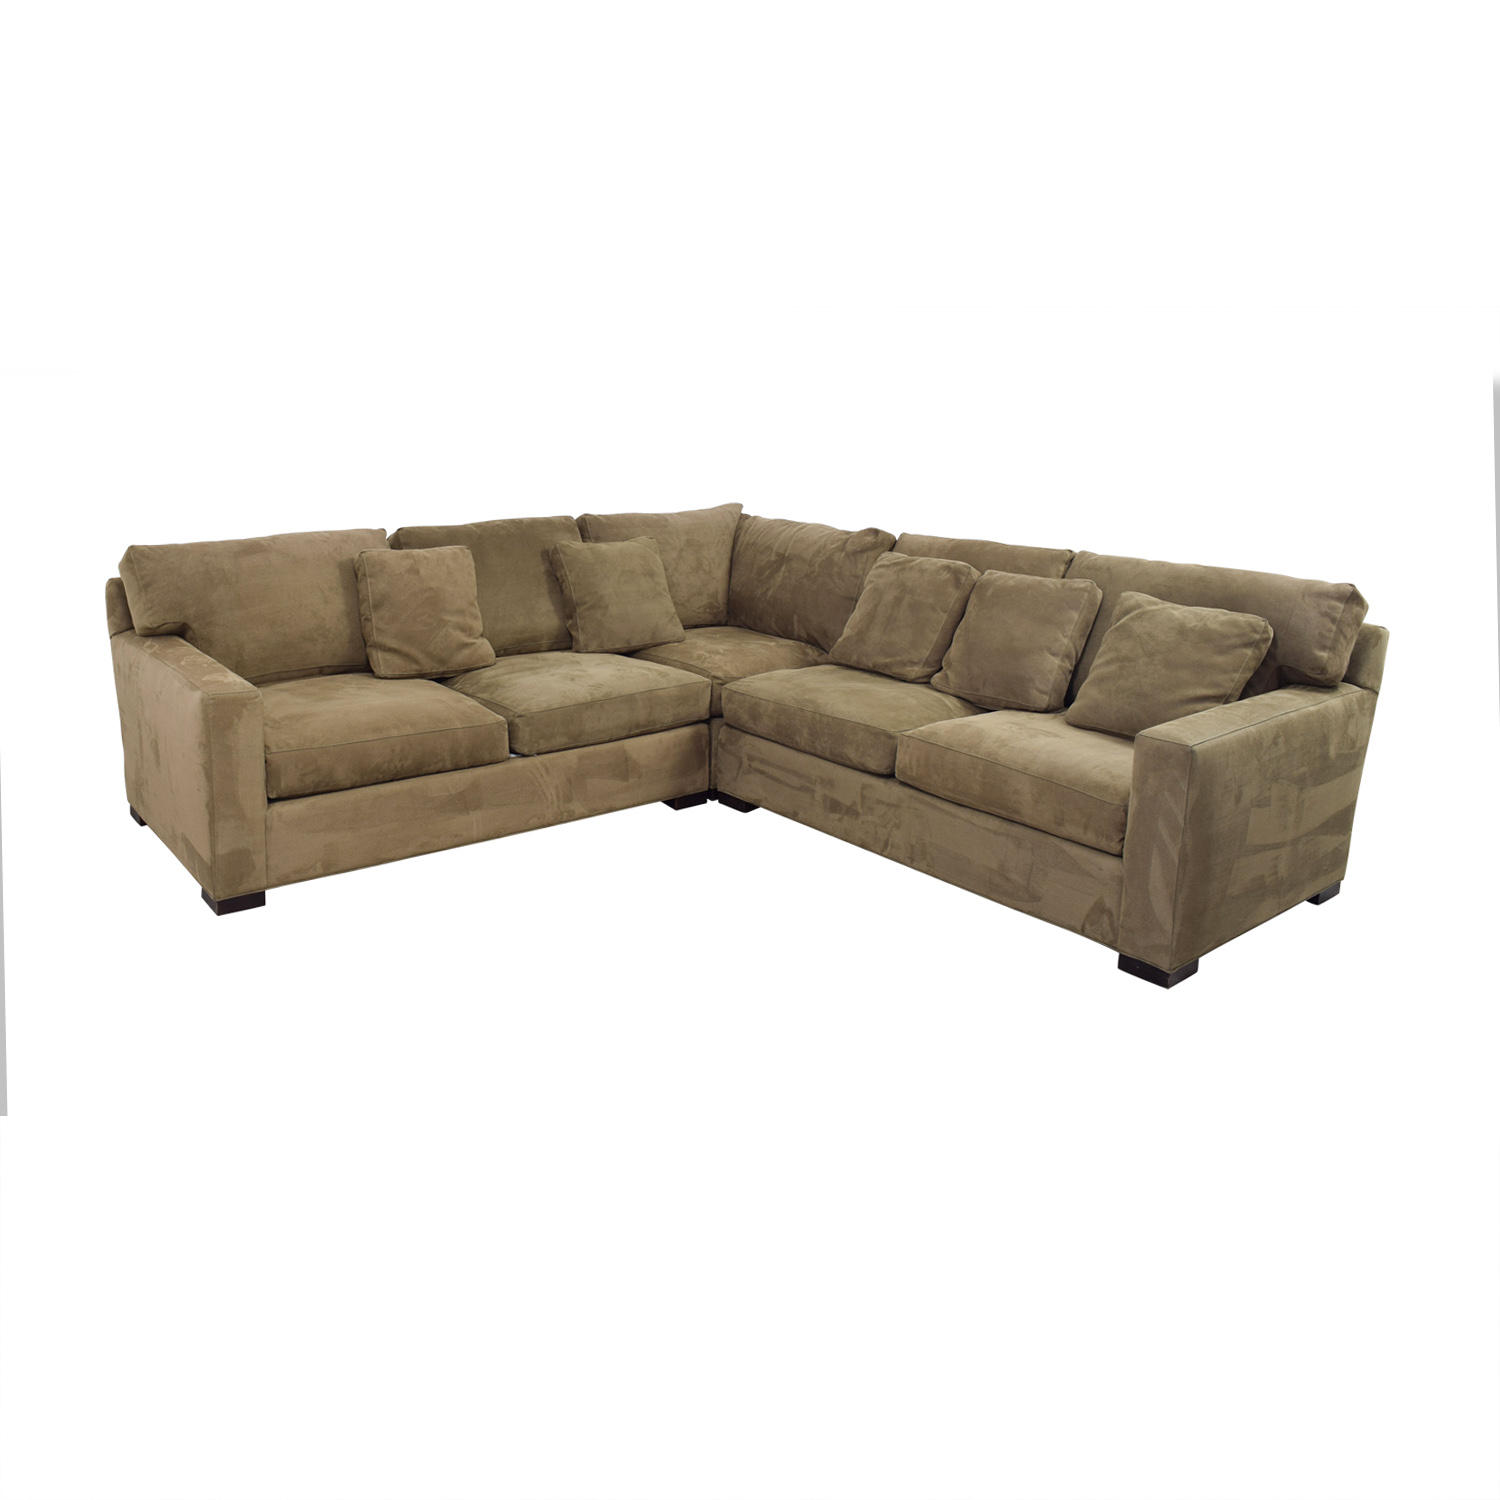 Crate & Barrel Crate & Barrel Axis II Brown L-Shaped Sectional price